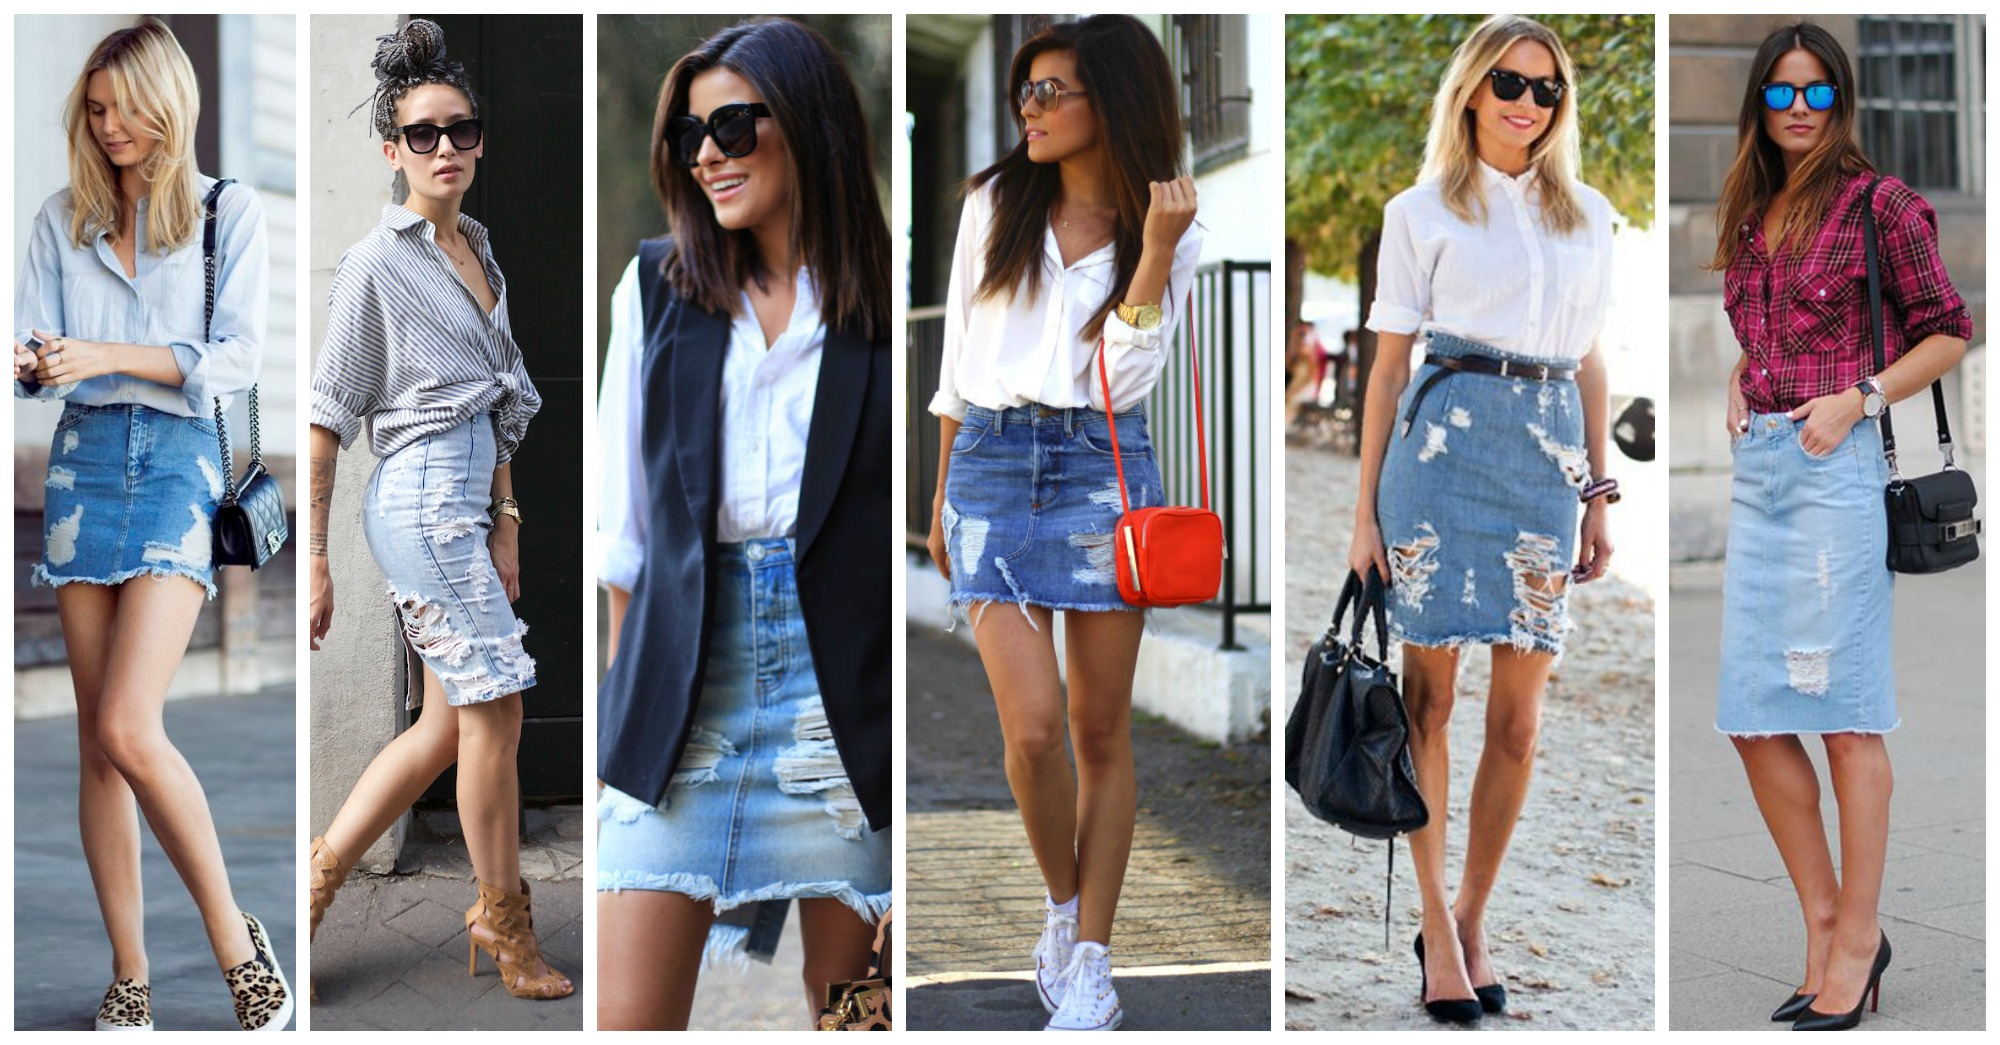 15 Chic Ways to Follow the Distressed Skirt Trend